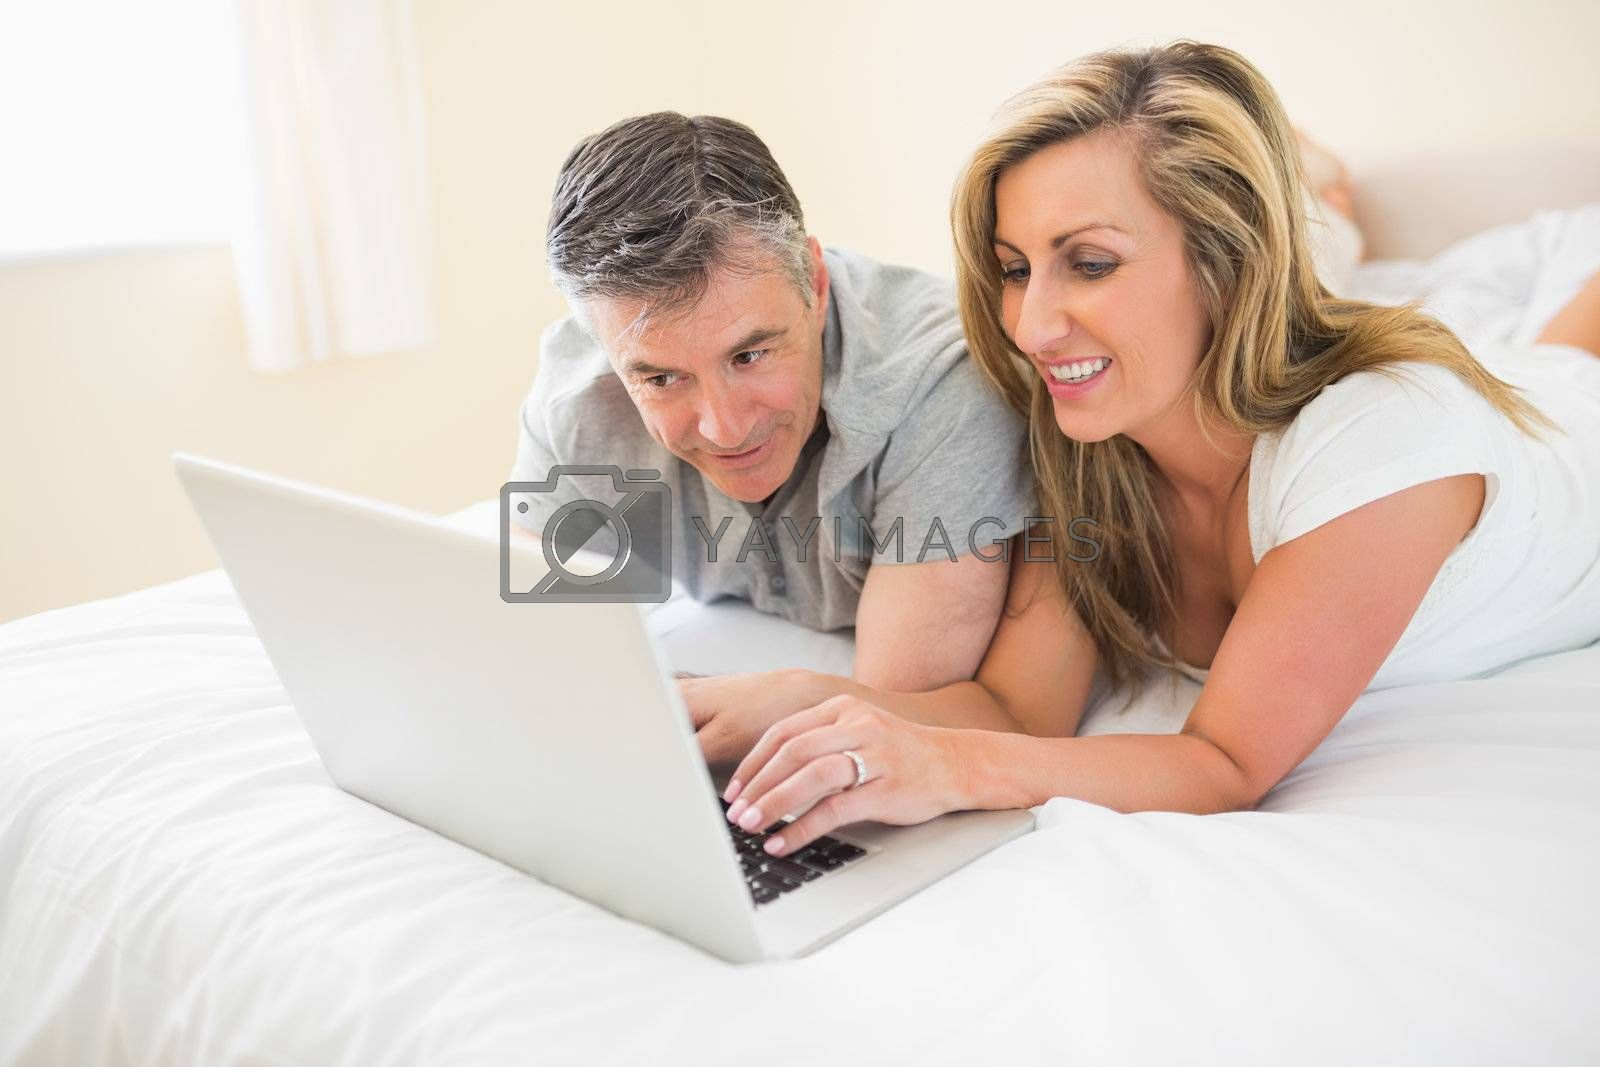 Happy couple lying on a bed watching a laptop by Wavebreakmedia